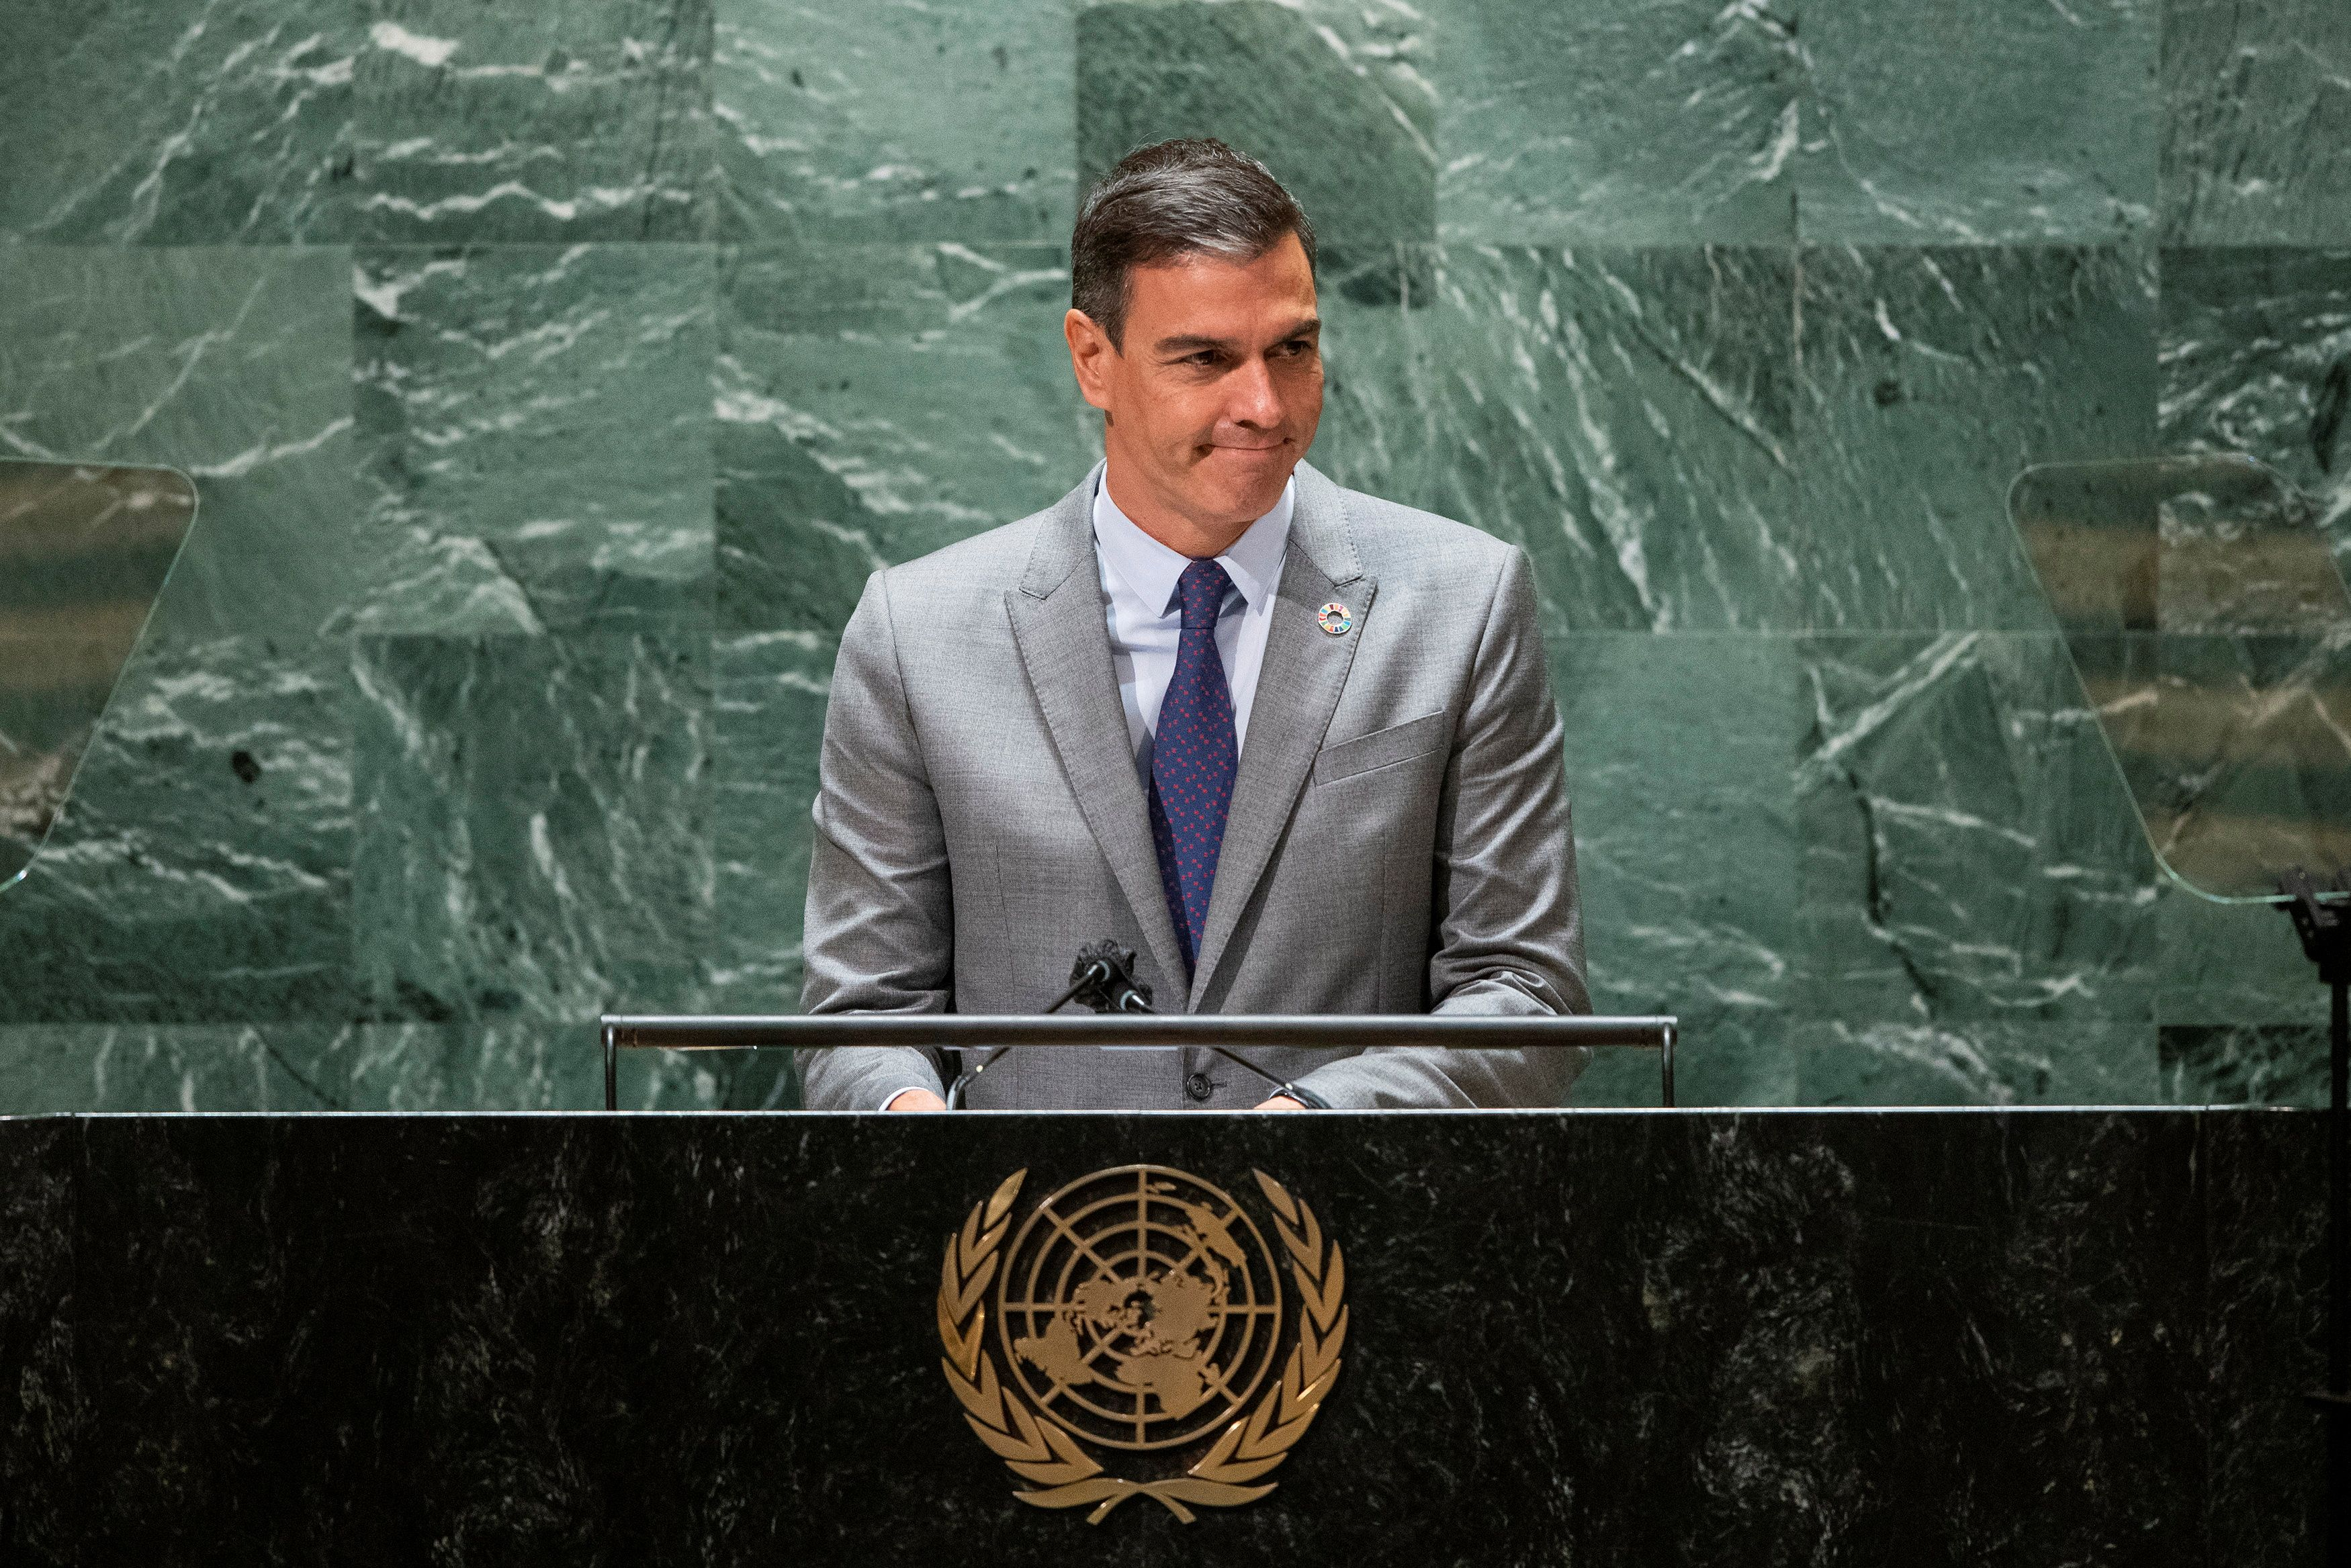 Spain's Prime Minister Pedro Sanchez addresses the 76th Session of the U.N. General Assembly in New York City, U.S., September 22, 2021.  REUTERS/Eduardo Munoz/Pool